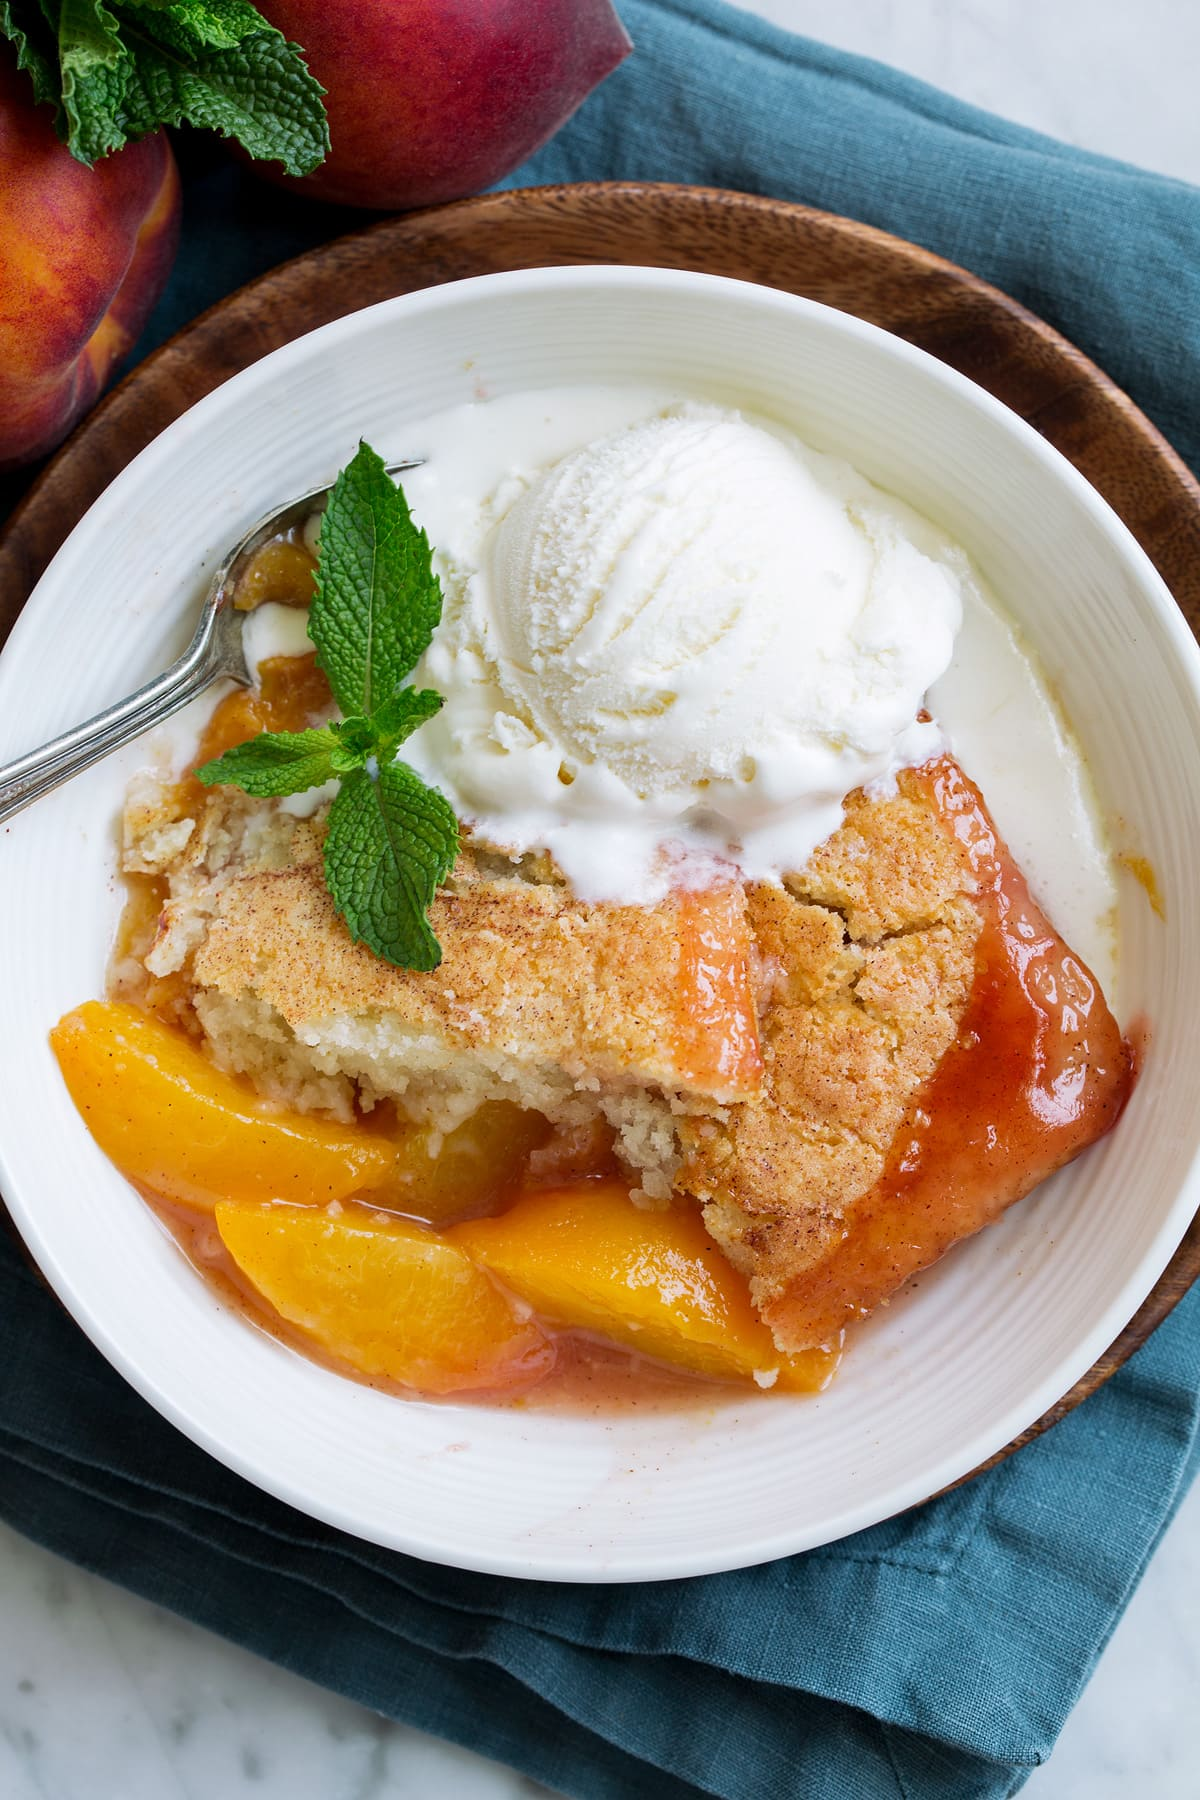 Overhead close up image of peach cobbler showing texture of filling and topping.